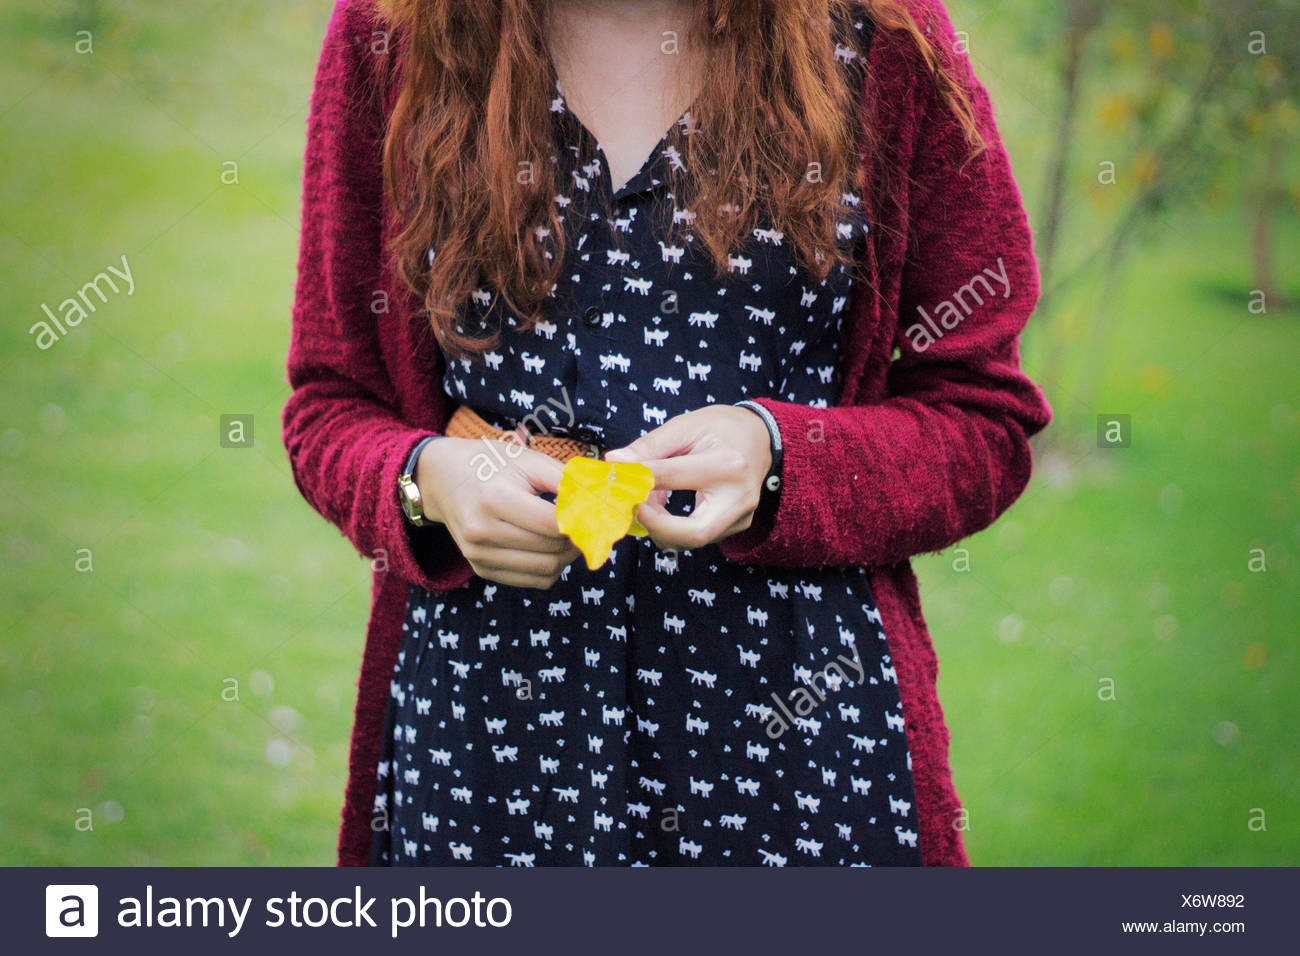 Midsection Of Woman Holding Autumn Leaf On Grassy Field - Stock Image